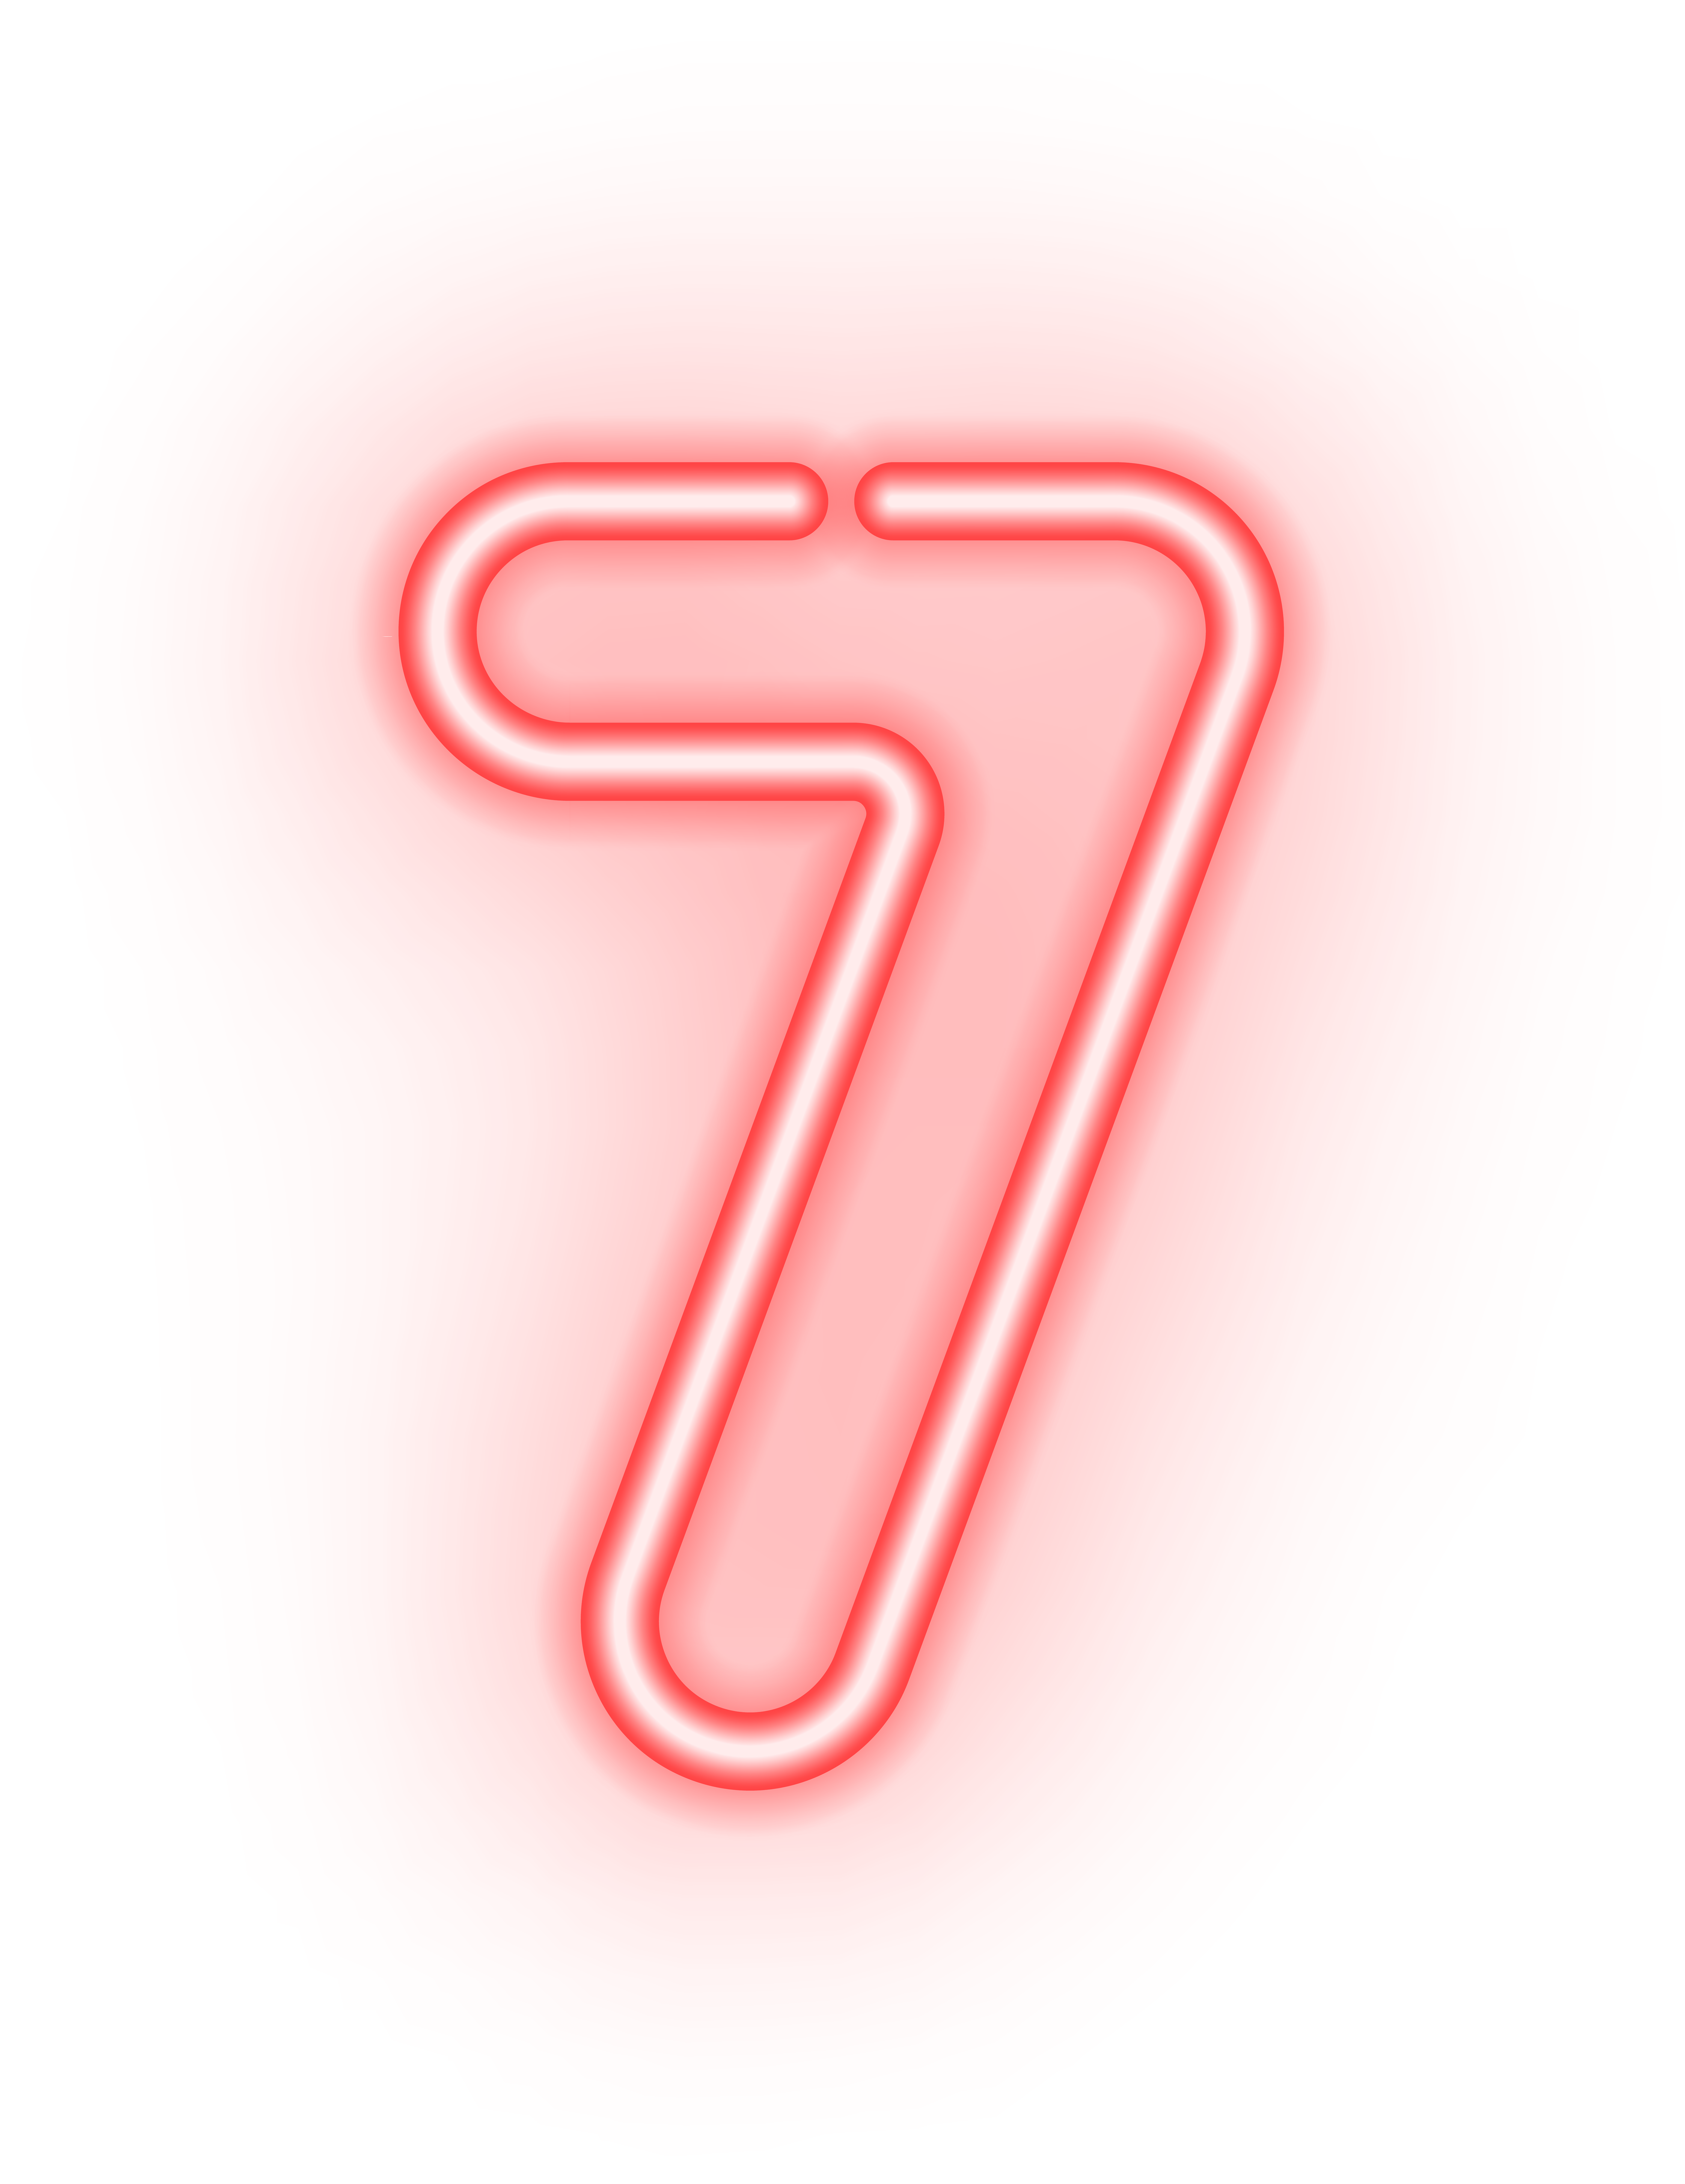 Neon Numbers Png - Number Seven Neon Transparent PNG Image | Gallery Yopriceville ...